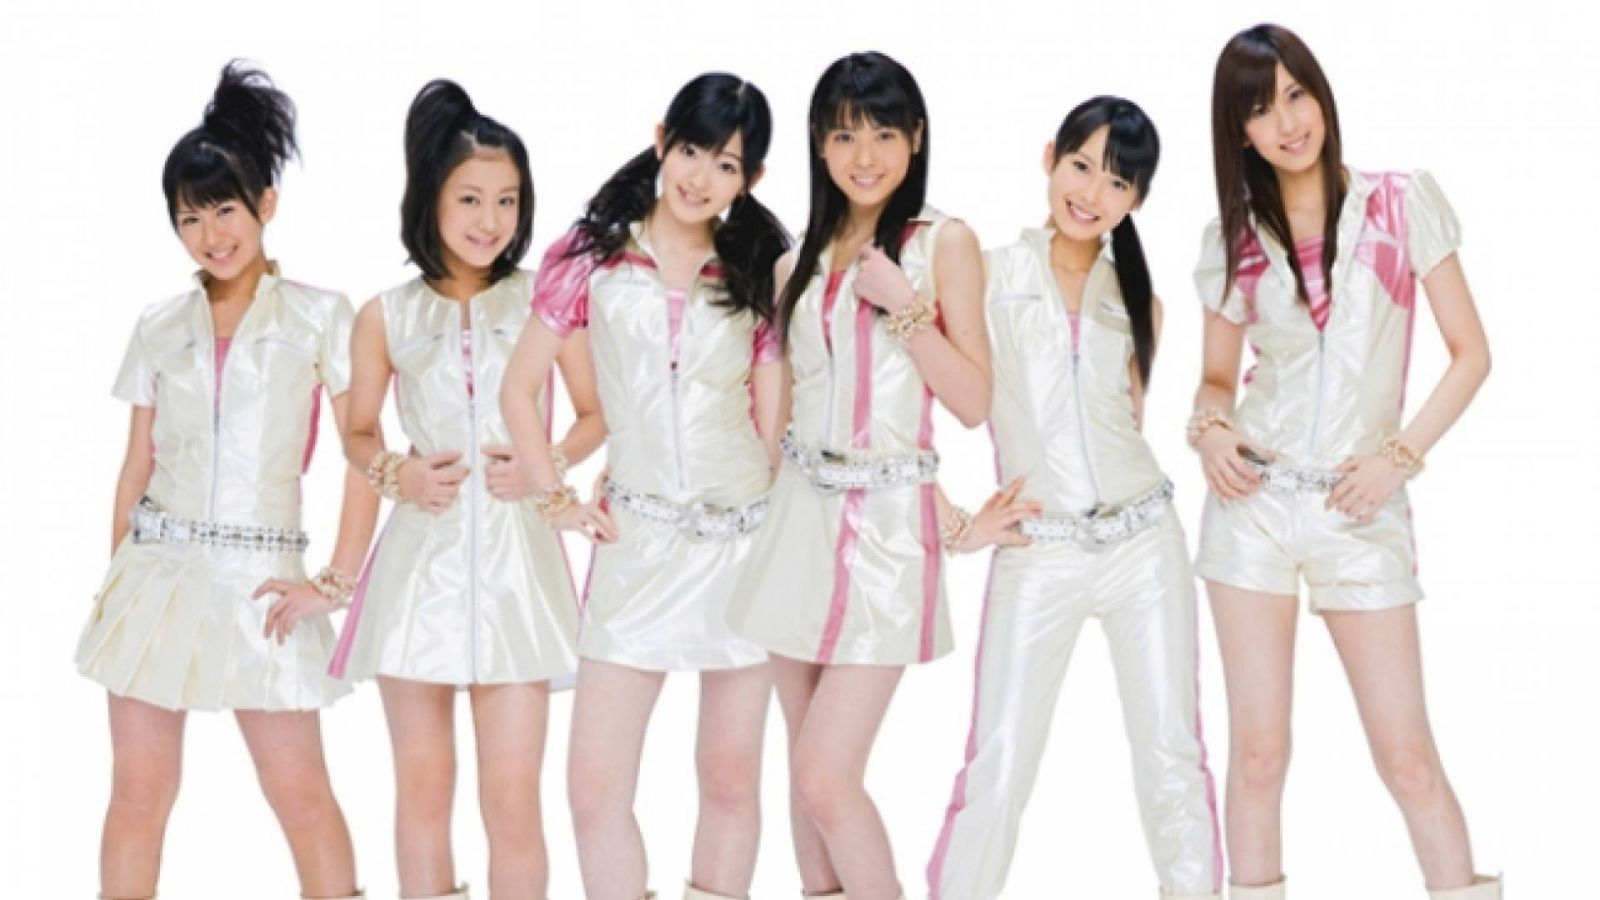 °C-ute's Latest Single: SHOCK! © JapanFiles.com / Up Front Agency